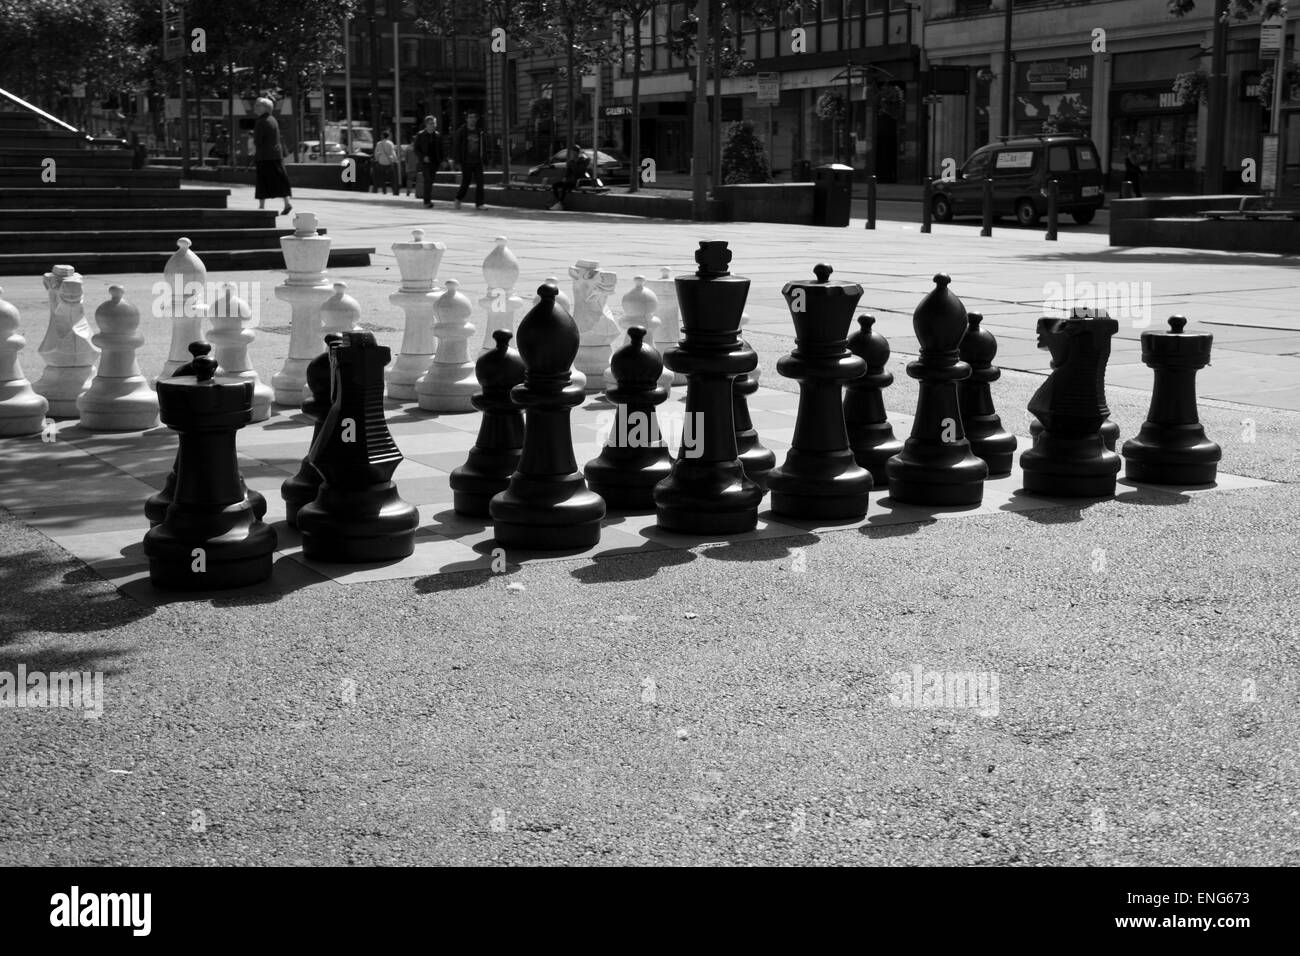 Huge chess board outside Leeds Central Library as public art. - Stock Image